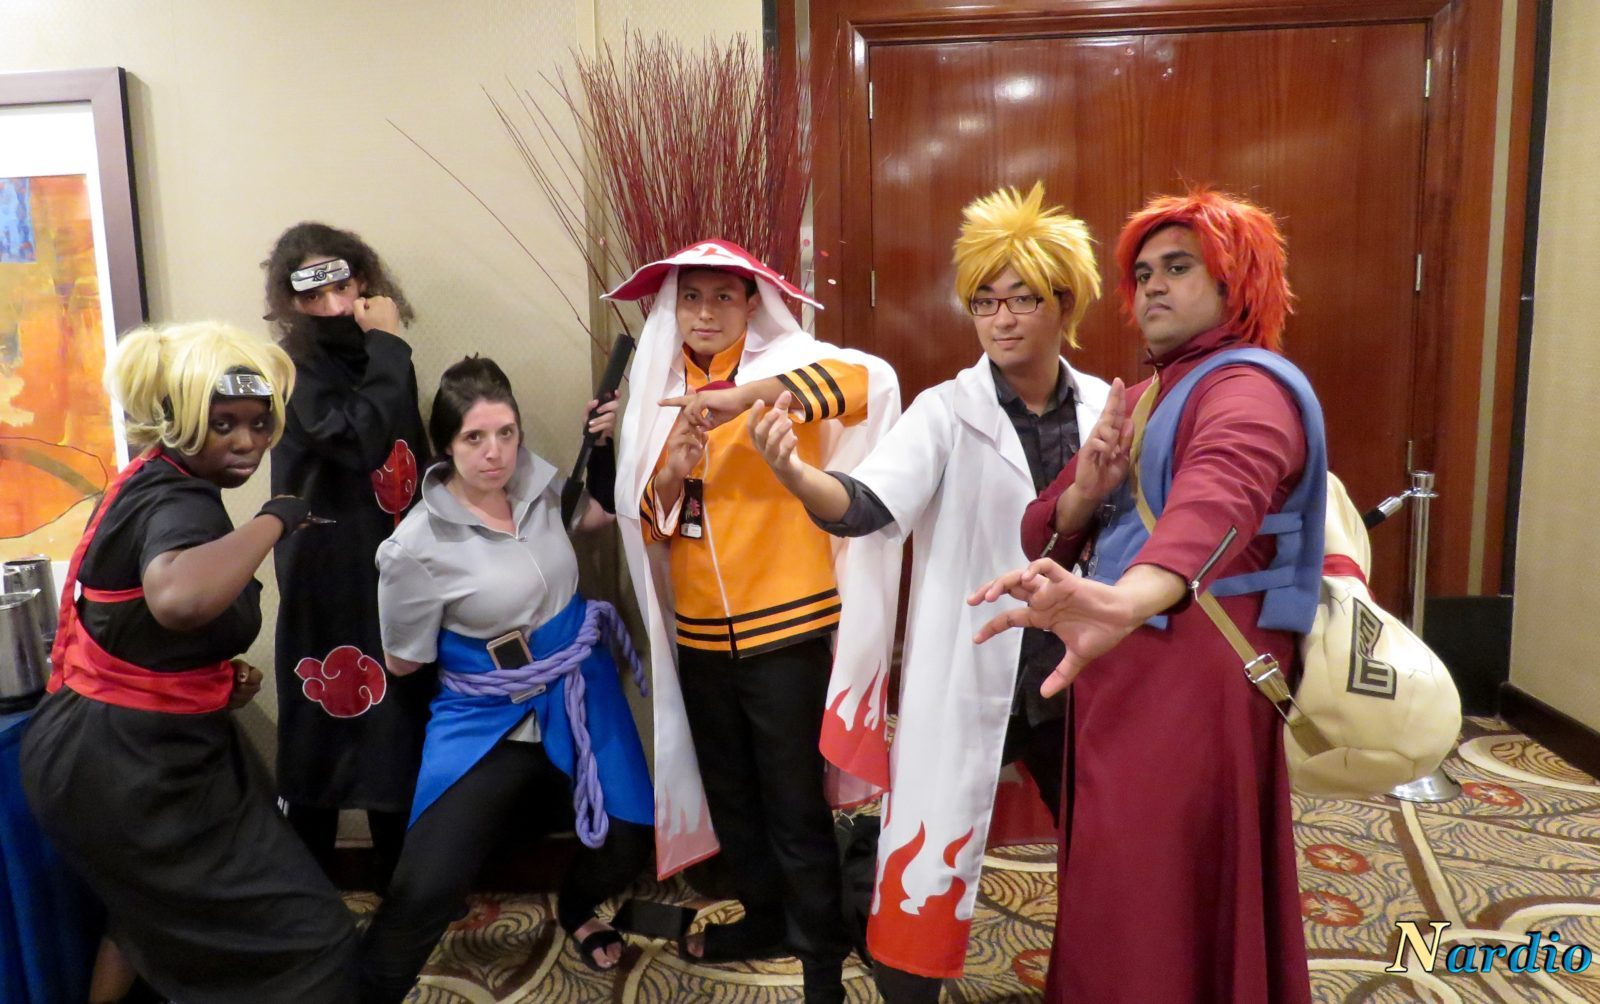 Naruto Group Cosplay Interview The World Of Nardio